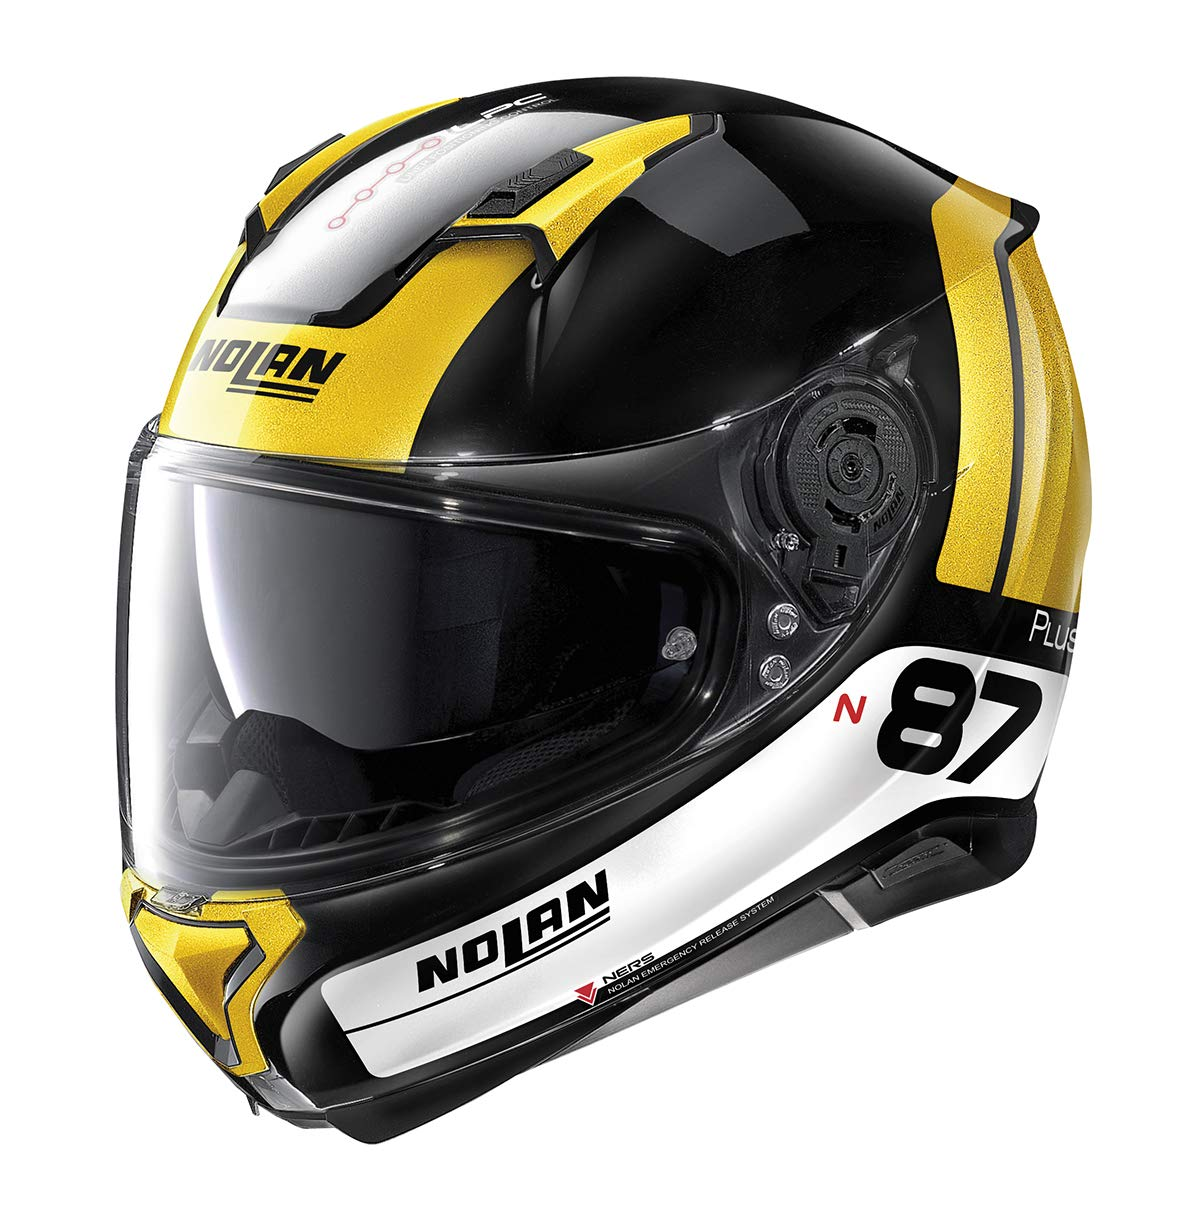 NOLAN CASCO N87 P DISTINCTIVE N-C GLOSSY BLACK L